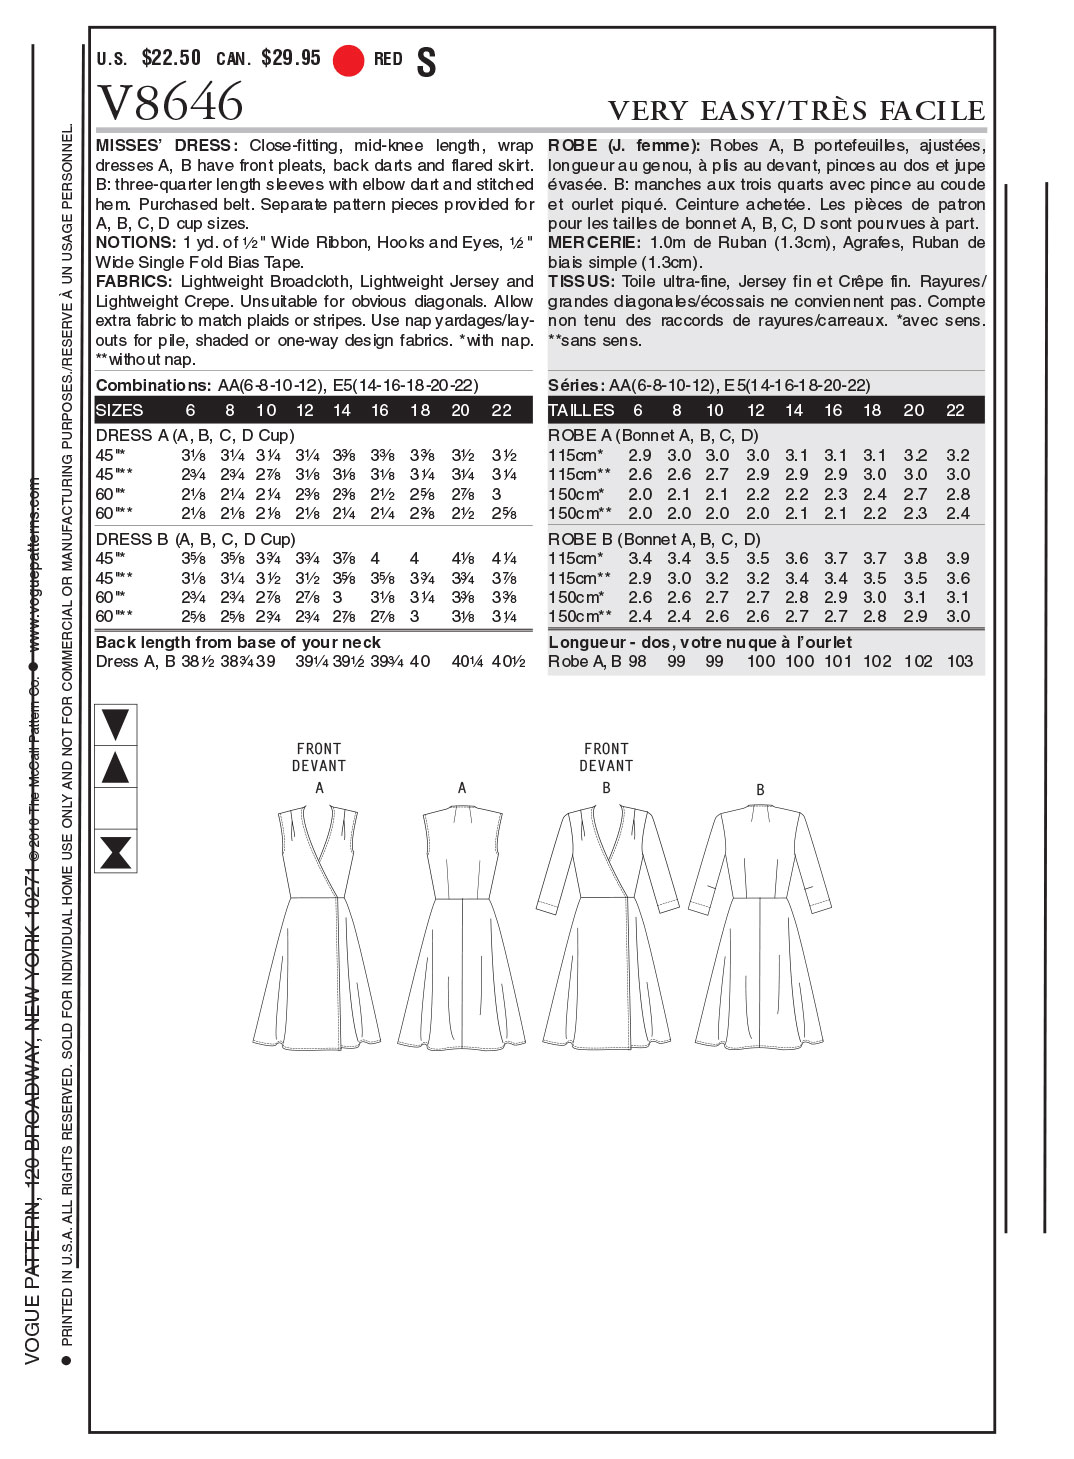 Vogue Patterns Misses Dress-V8646